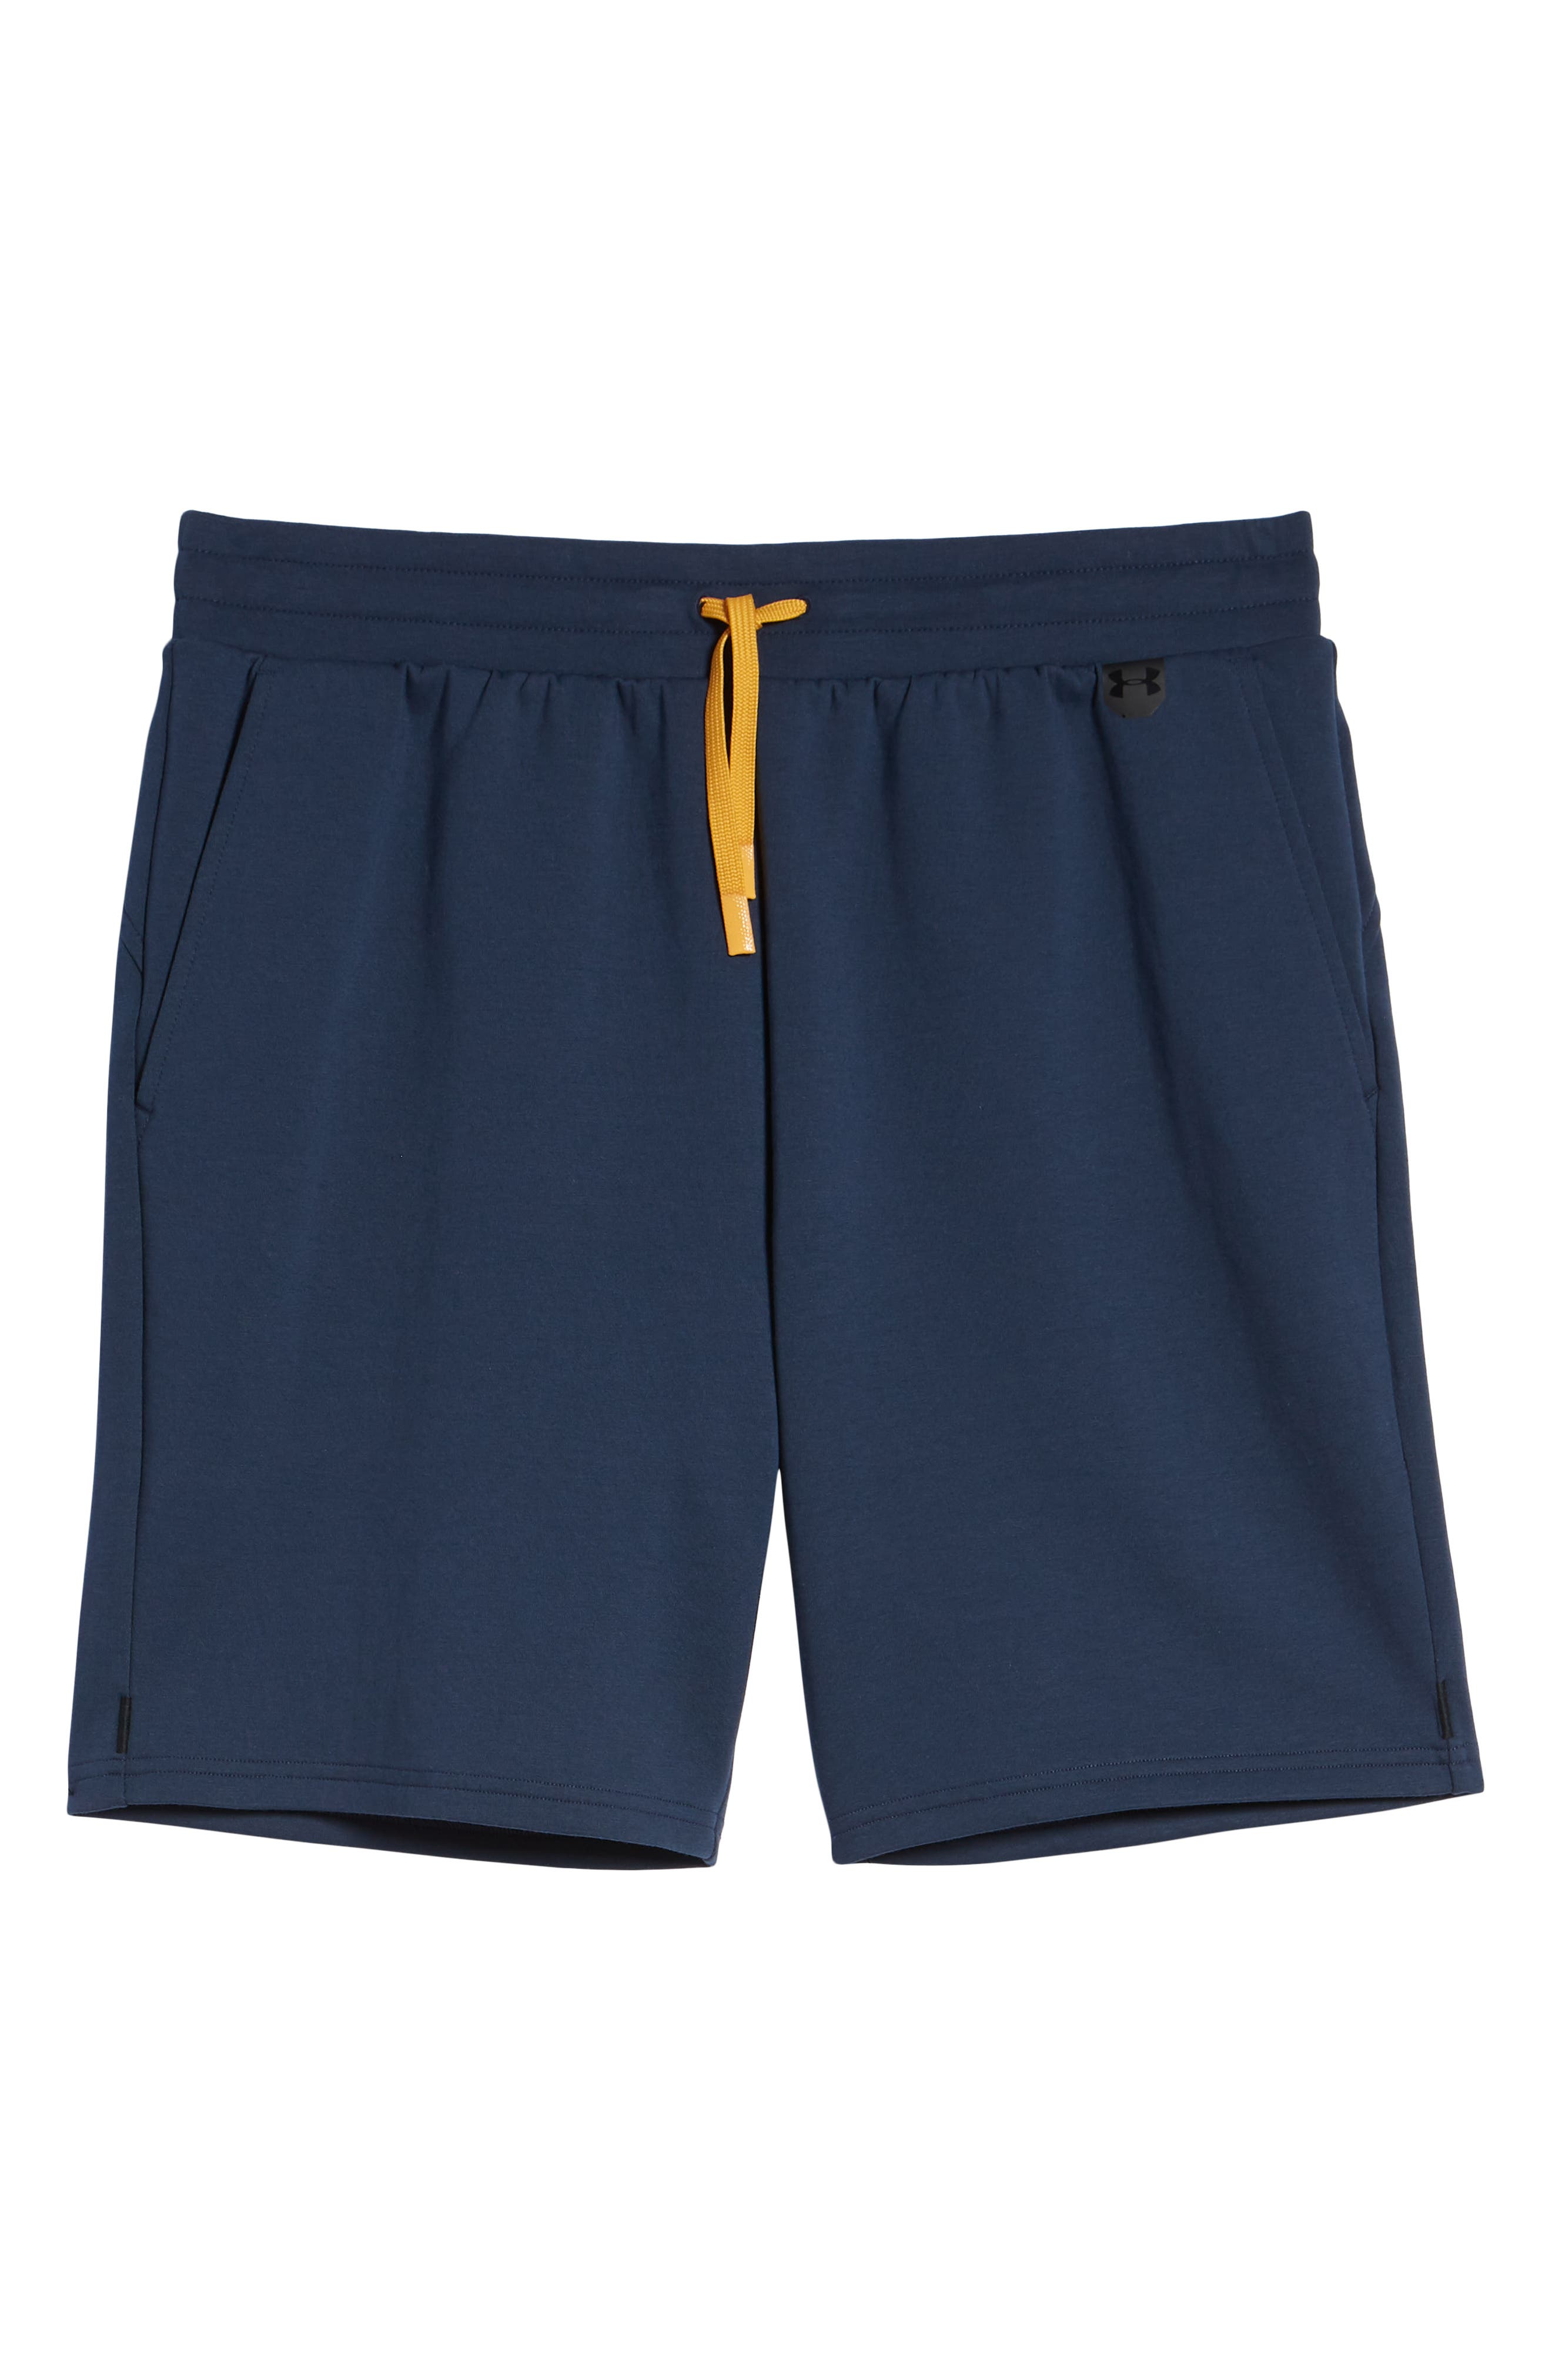 UNDER ARMOUR, Unstoppable Knit Shorts, Alternate thumbnail 7, color, SUMMER NIGHT / YELLOW / BLACK